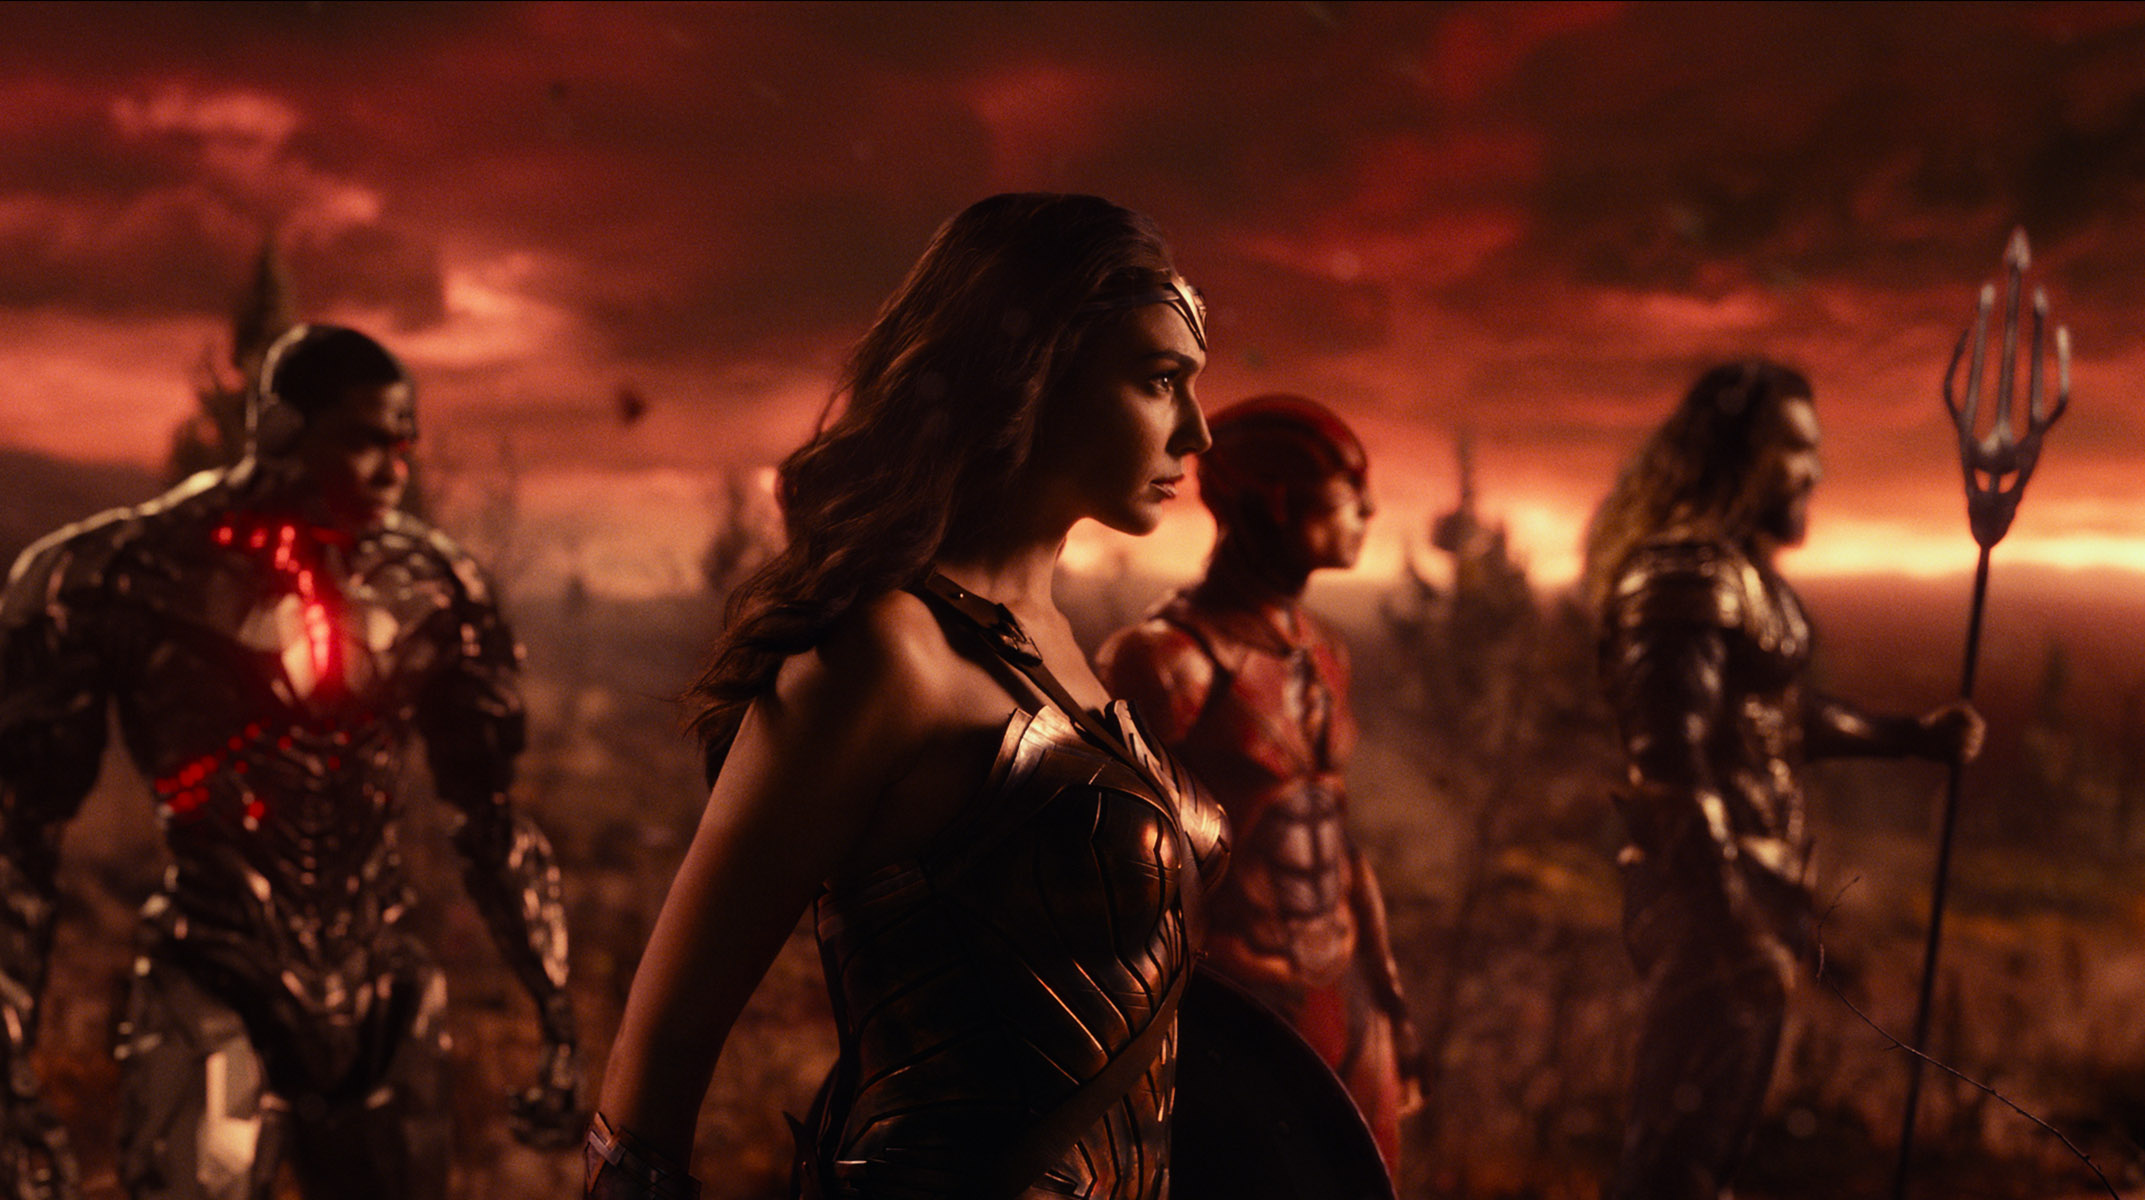 Movie Watch: Amarillo film options for Nov. 16 to 23, including 'Justice League,' 'Wonder,' more